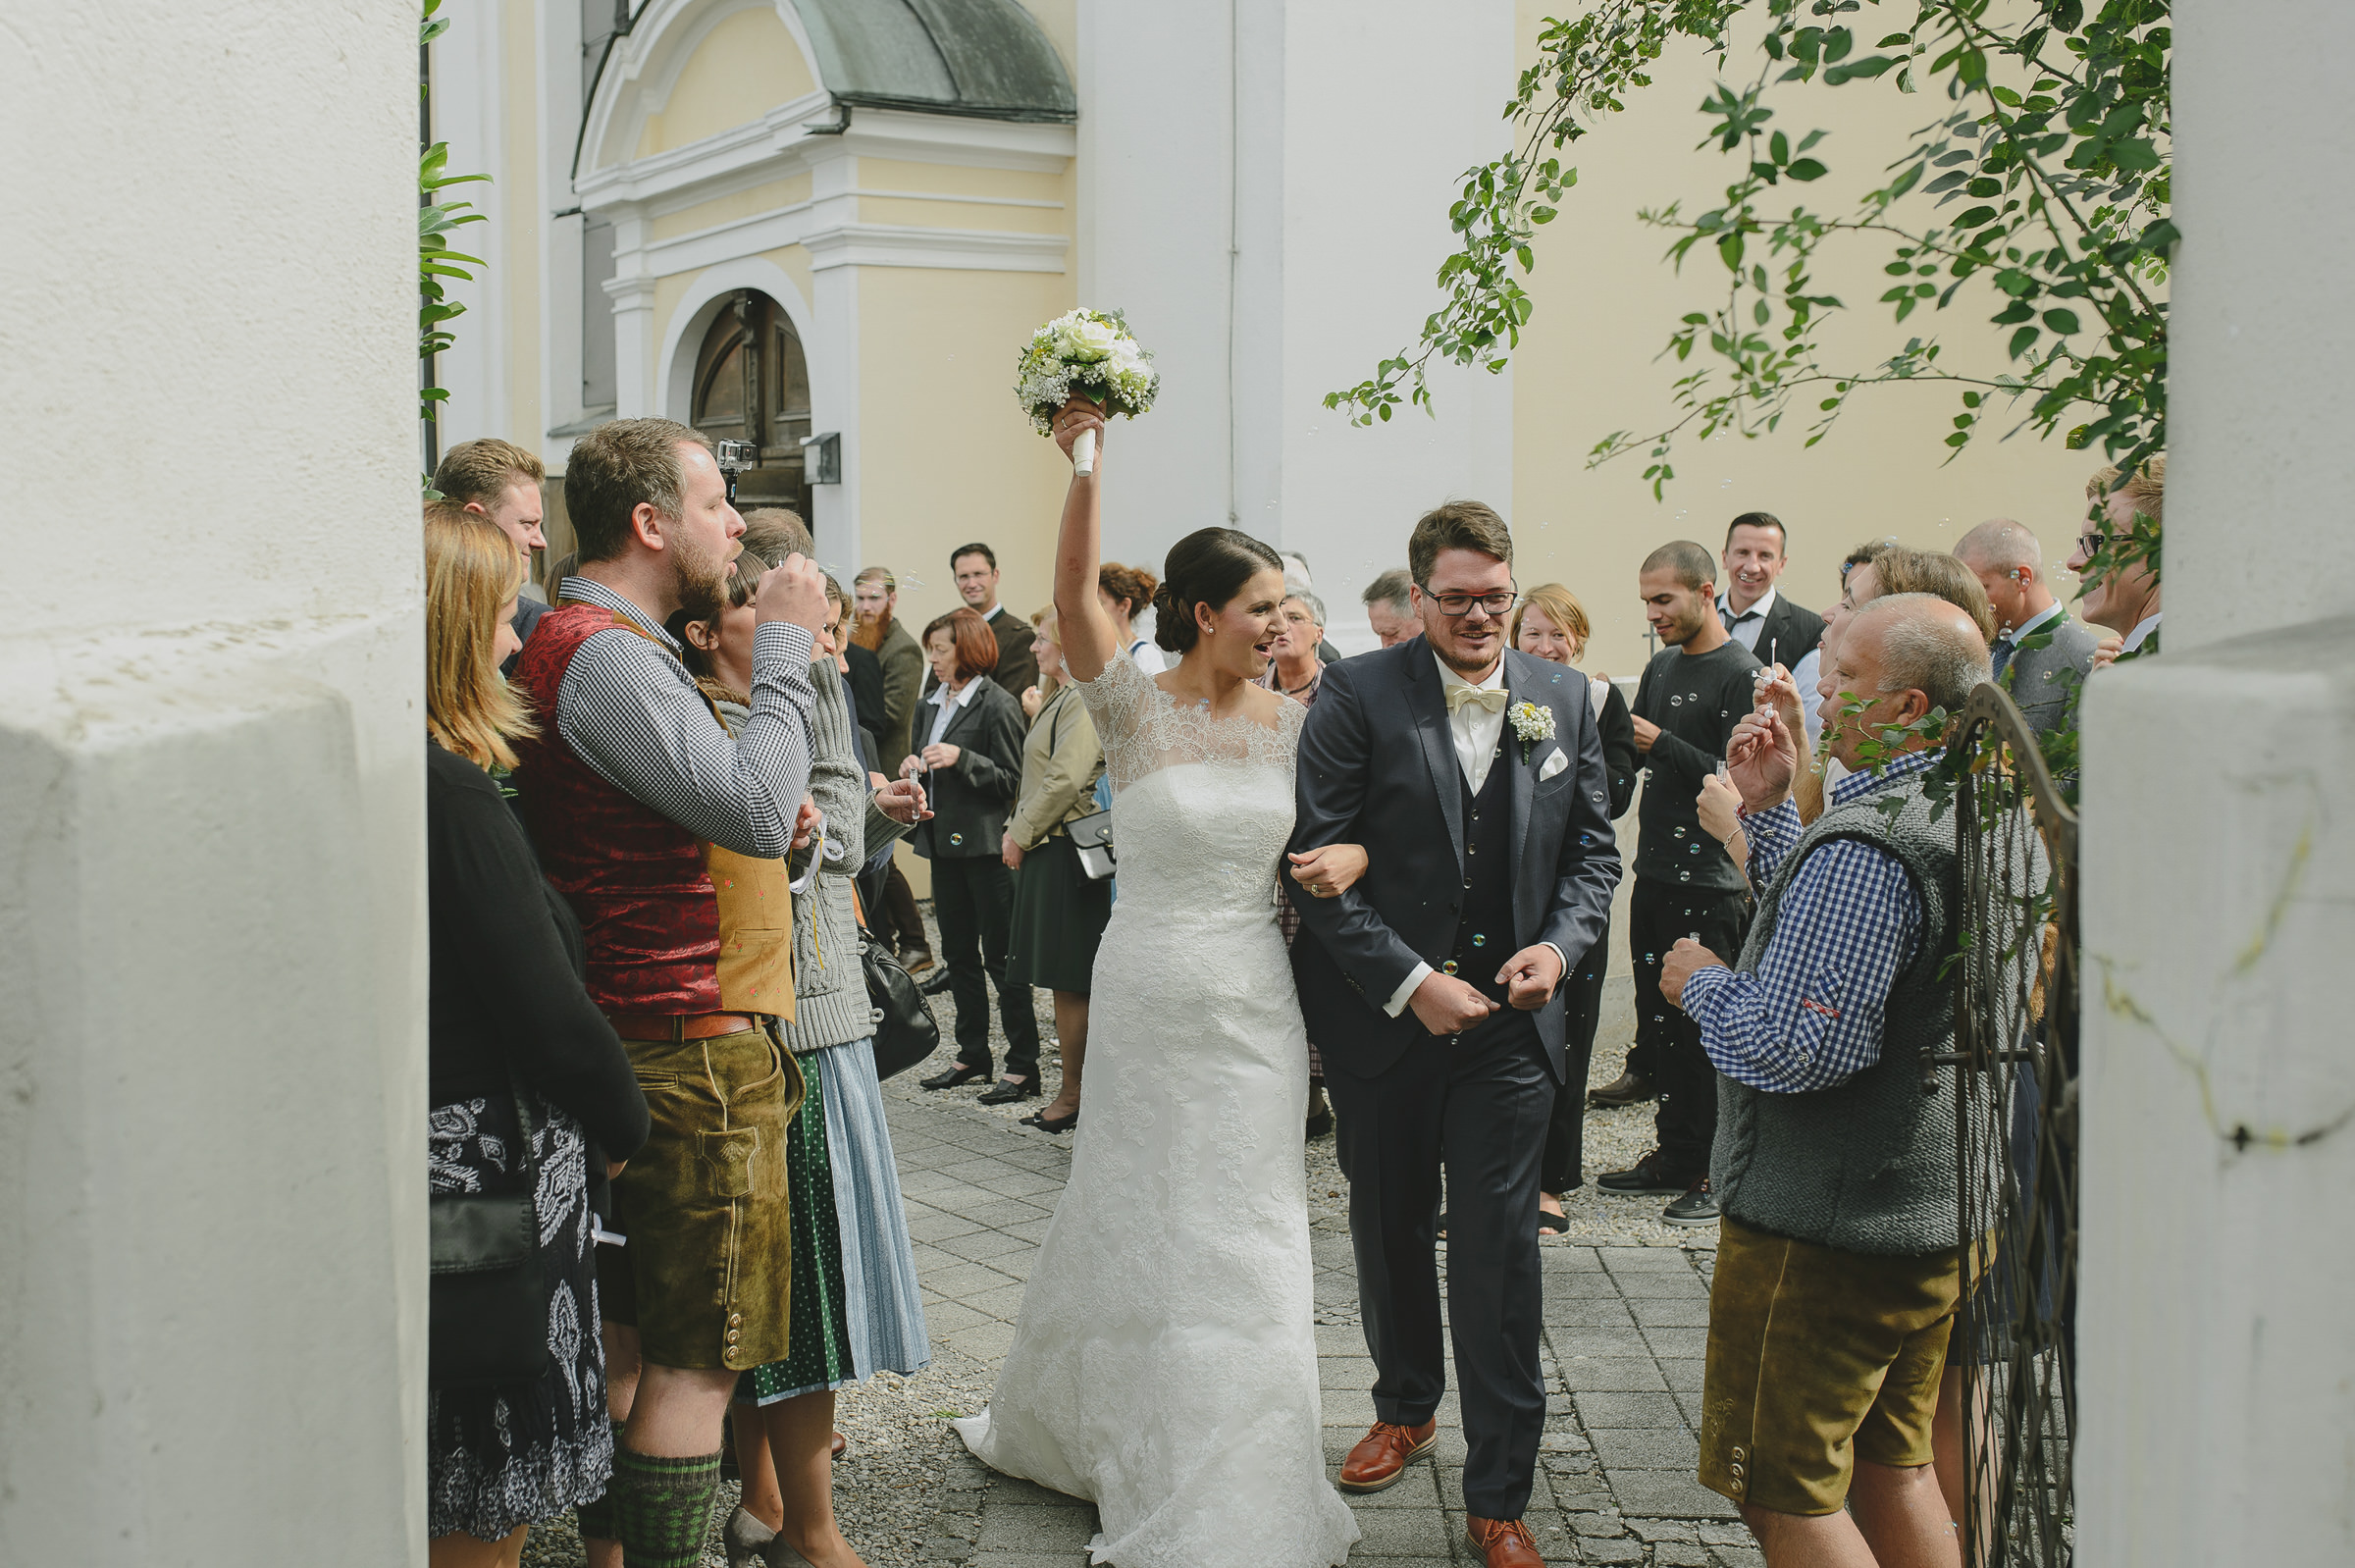 Bavarian Traditions at the Wedding